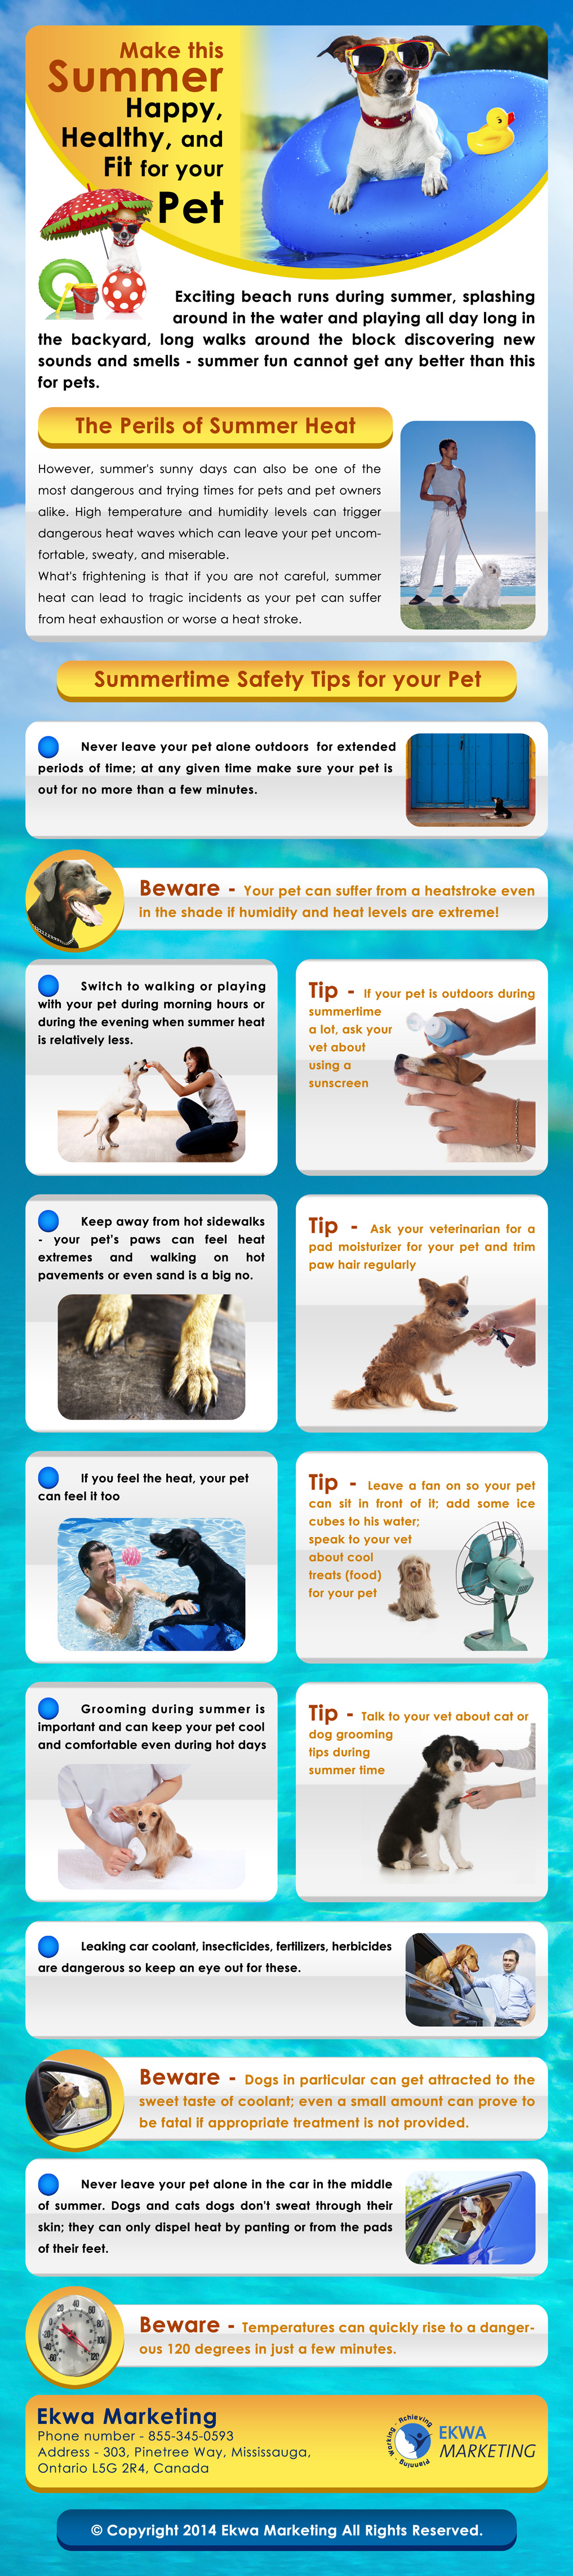 Veterinary Info Graphics, Make this Summer Happy, Healthy and fit for your pet